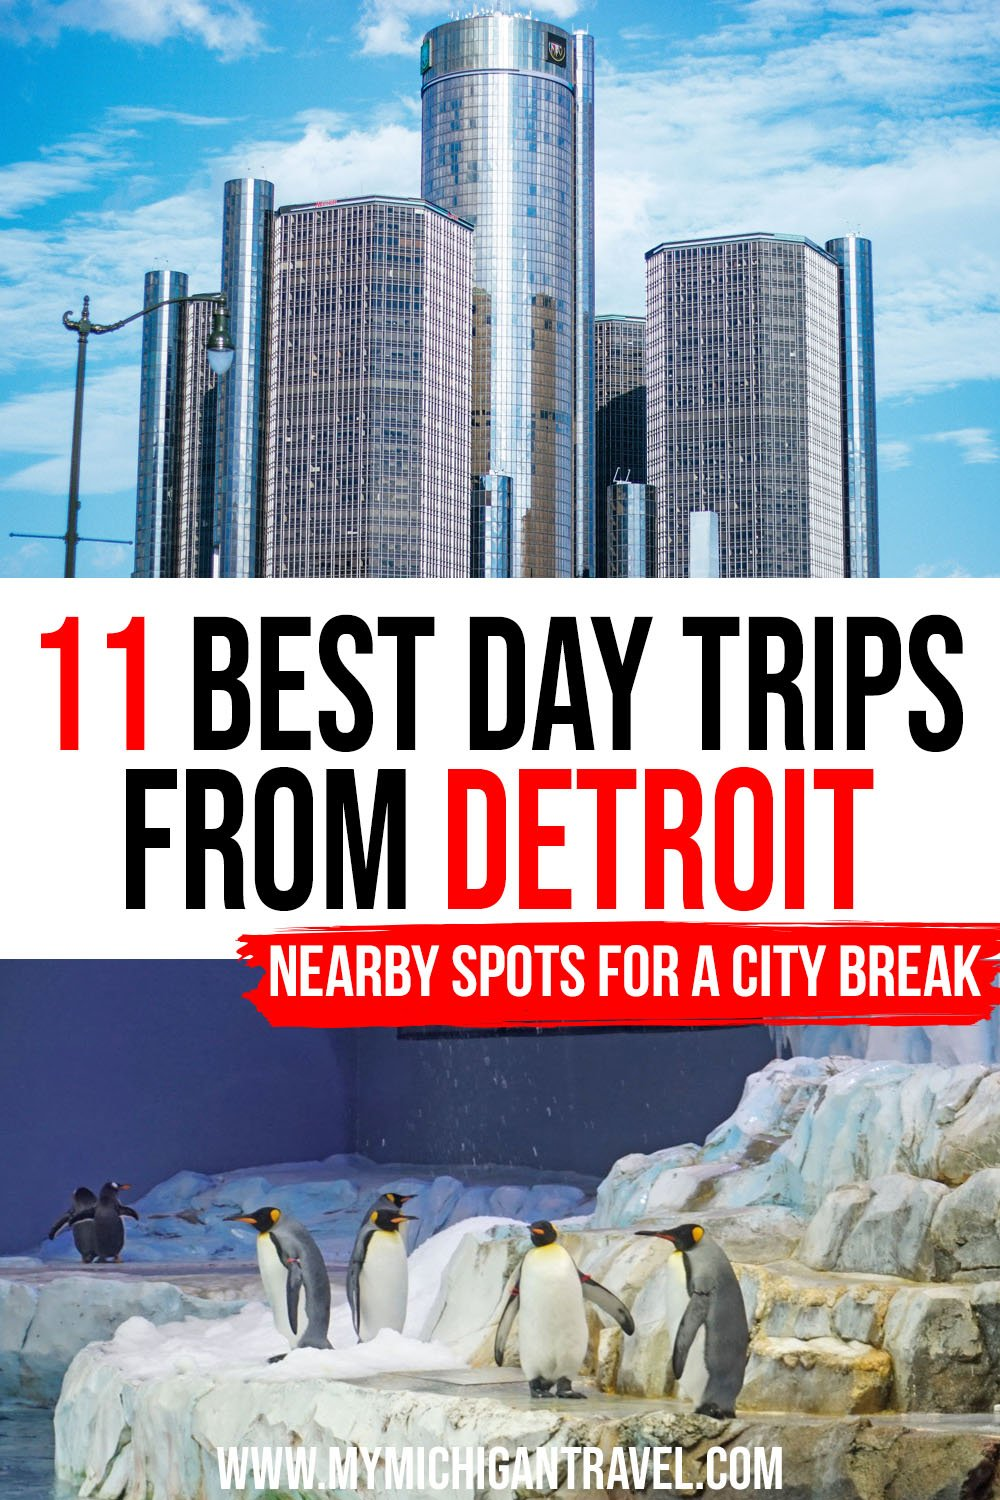 """Photo collage of the Renaissance Center, a tall, silver skyscraper, and penguins in a zoo building with text overlay reading """"11 best day trips from Detroit - nearby spots for a city break"""""""